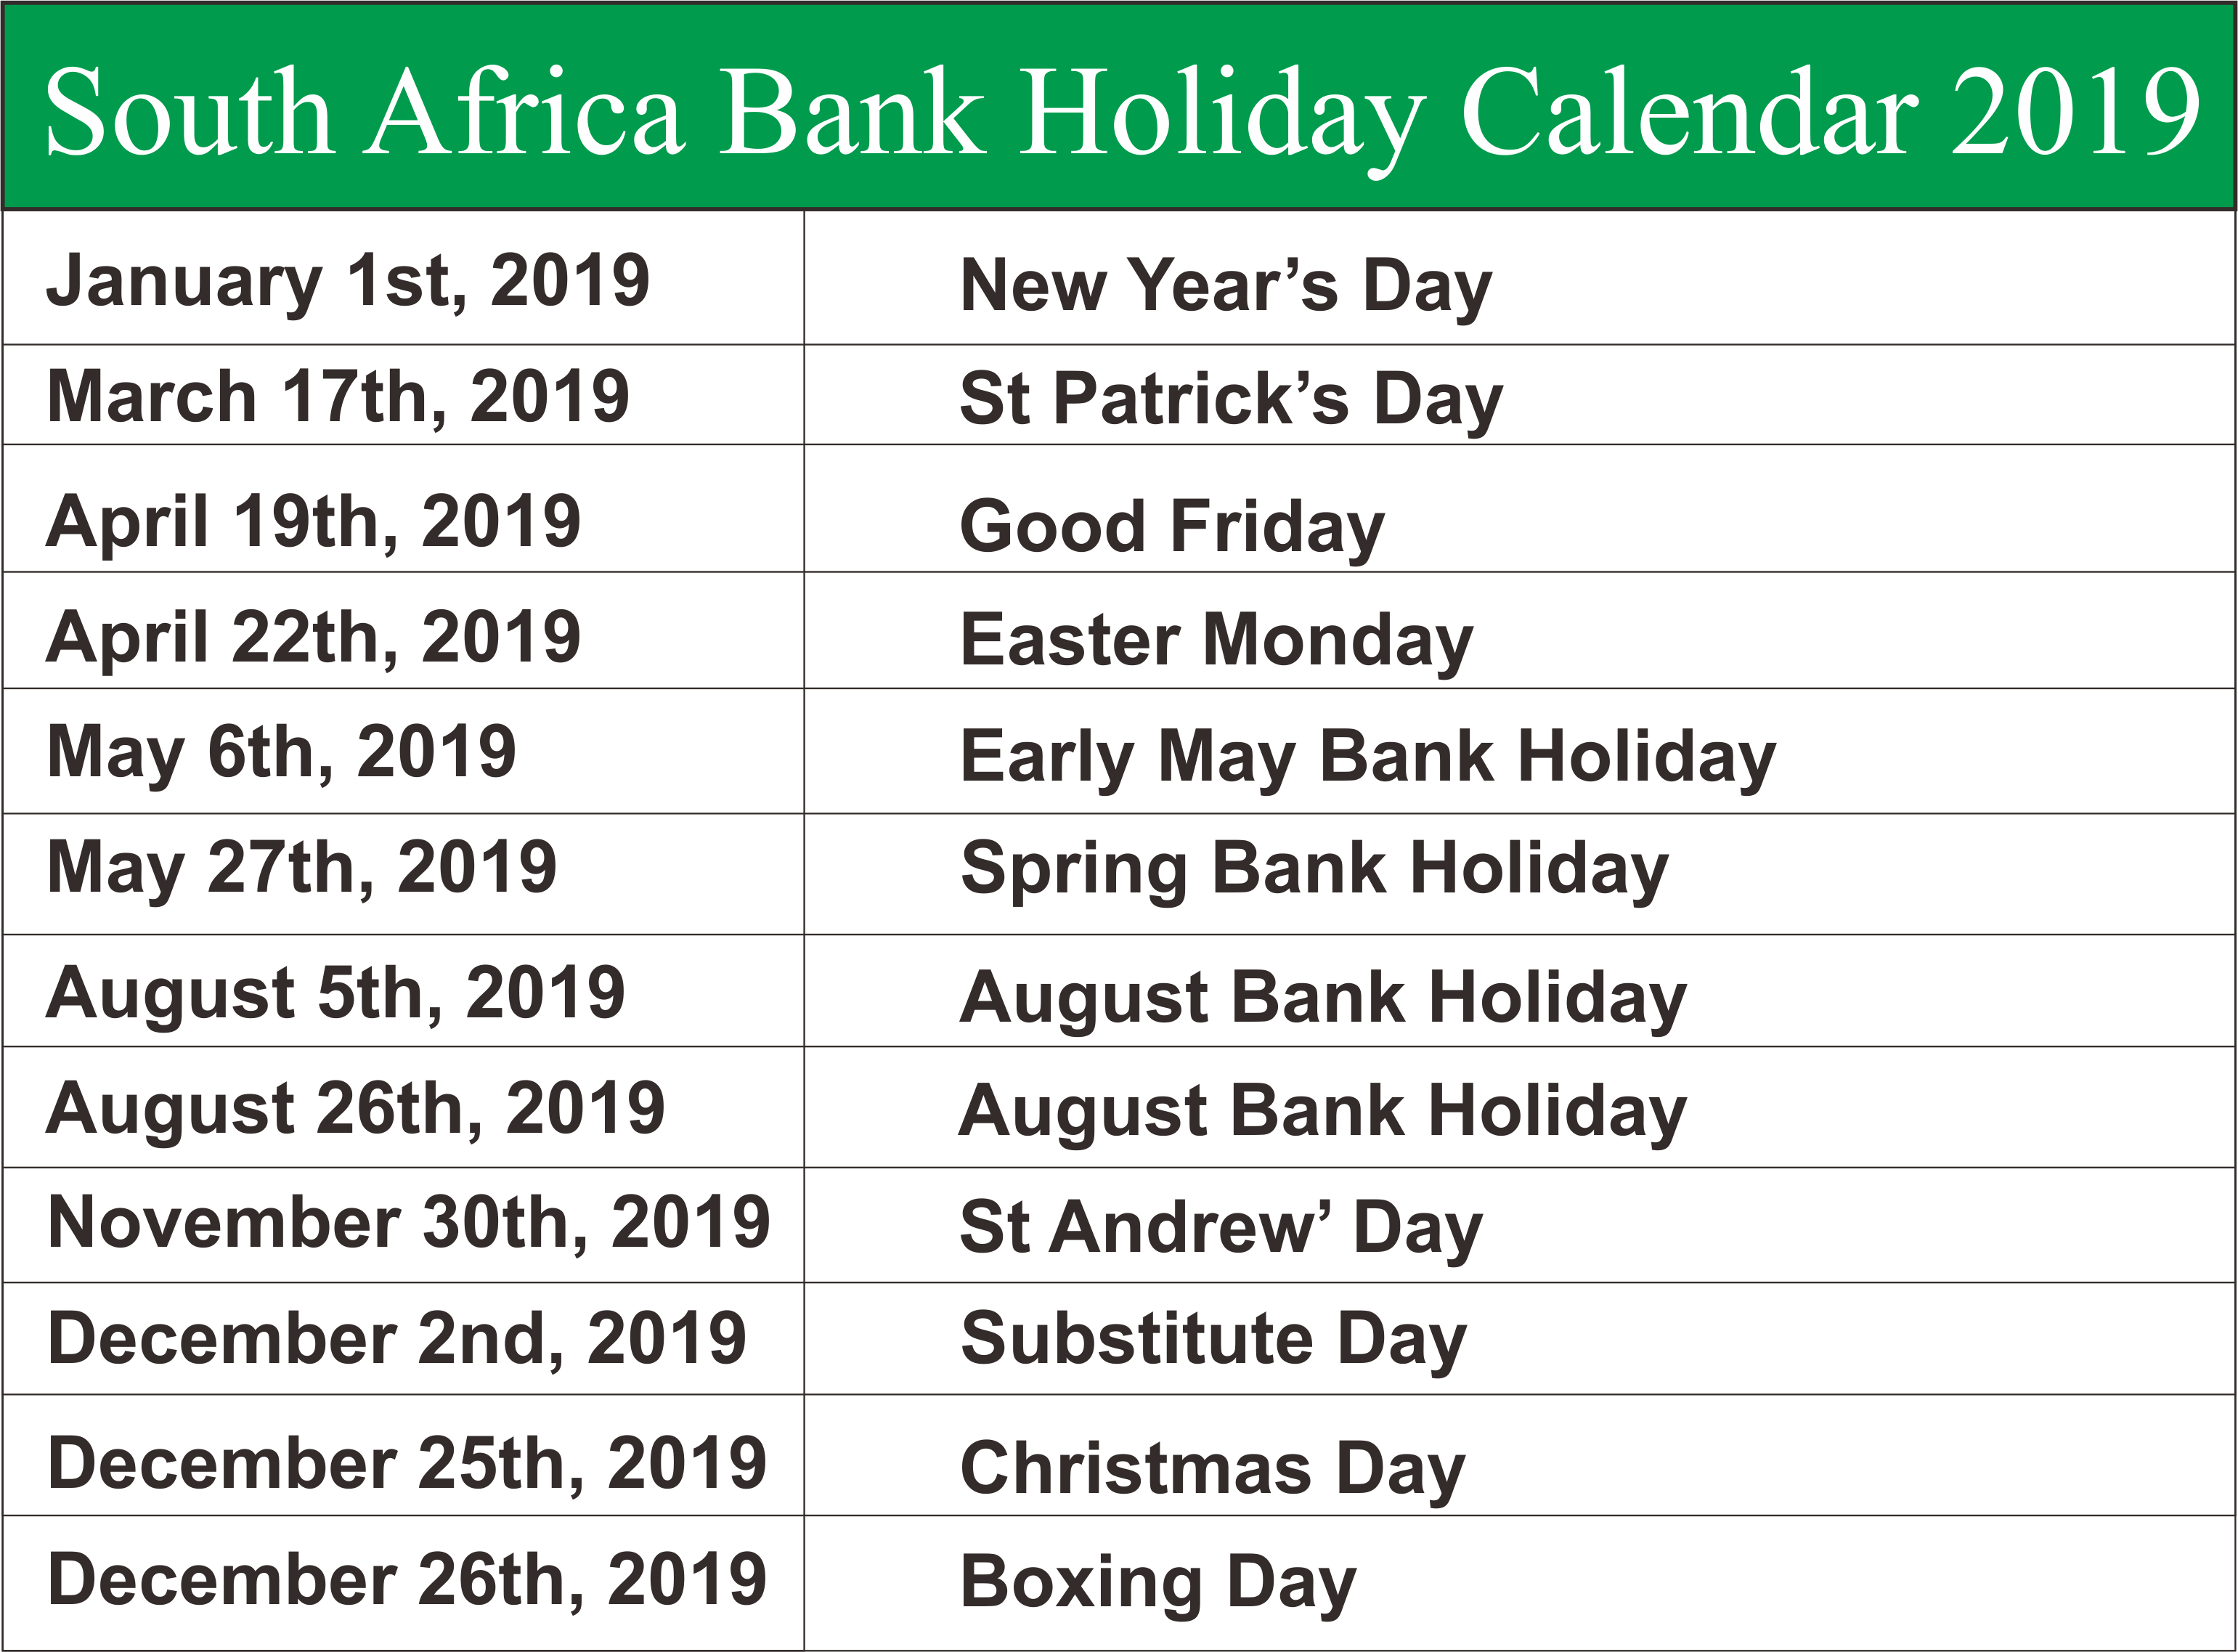 South Africa Bank Holiday Calendar 2019